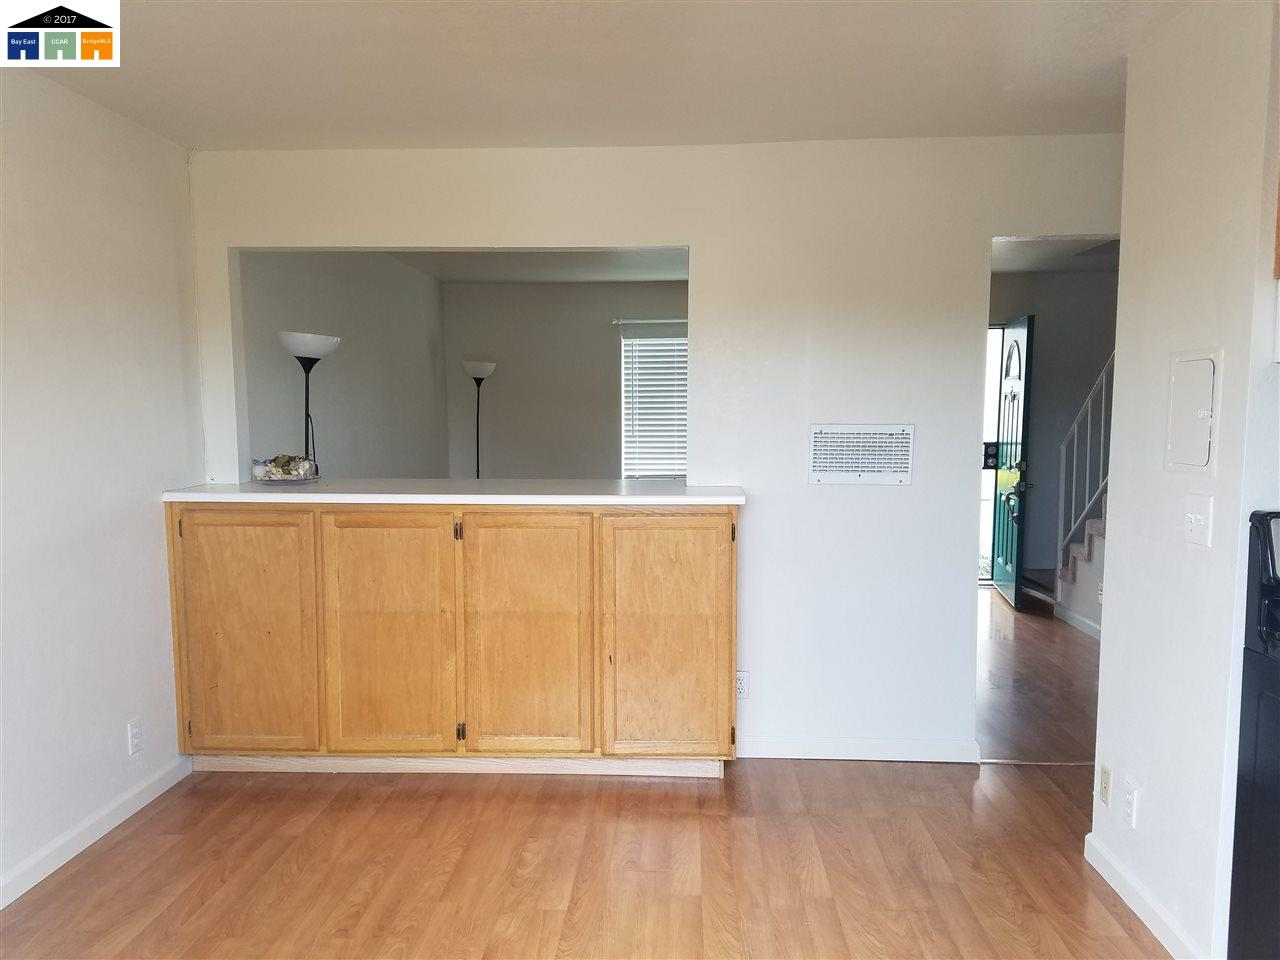 Additional photo for property listing at 260 Sunset Blvd  Hayward, Калифорния 94541 Соединенные Штаты